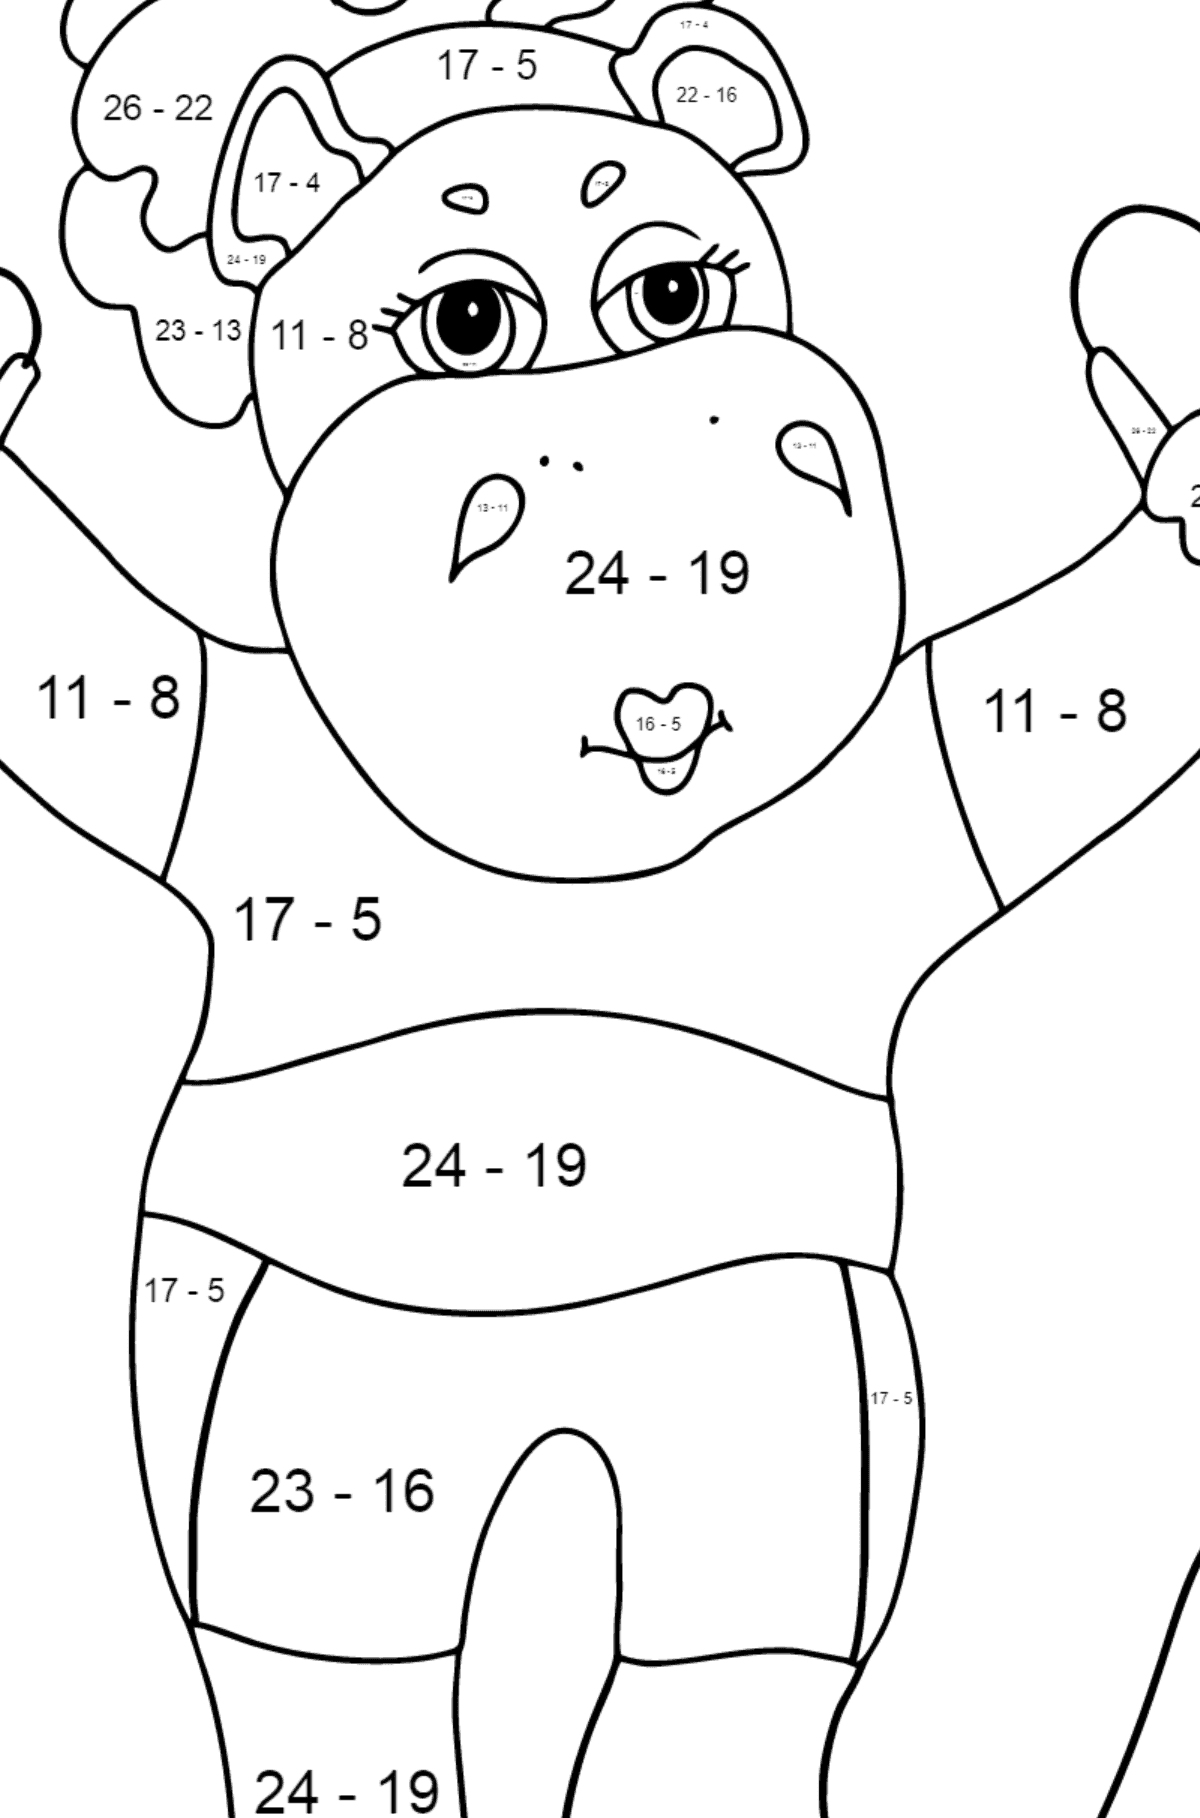 Coloring Page - A Hippo is Jumping on a Rope for Kids  - Color by Number Substraction